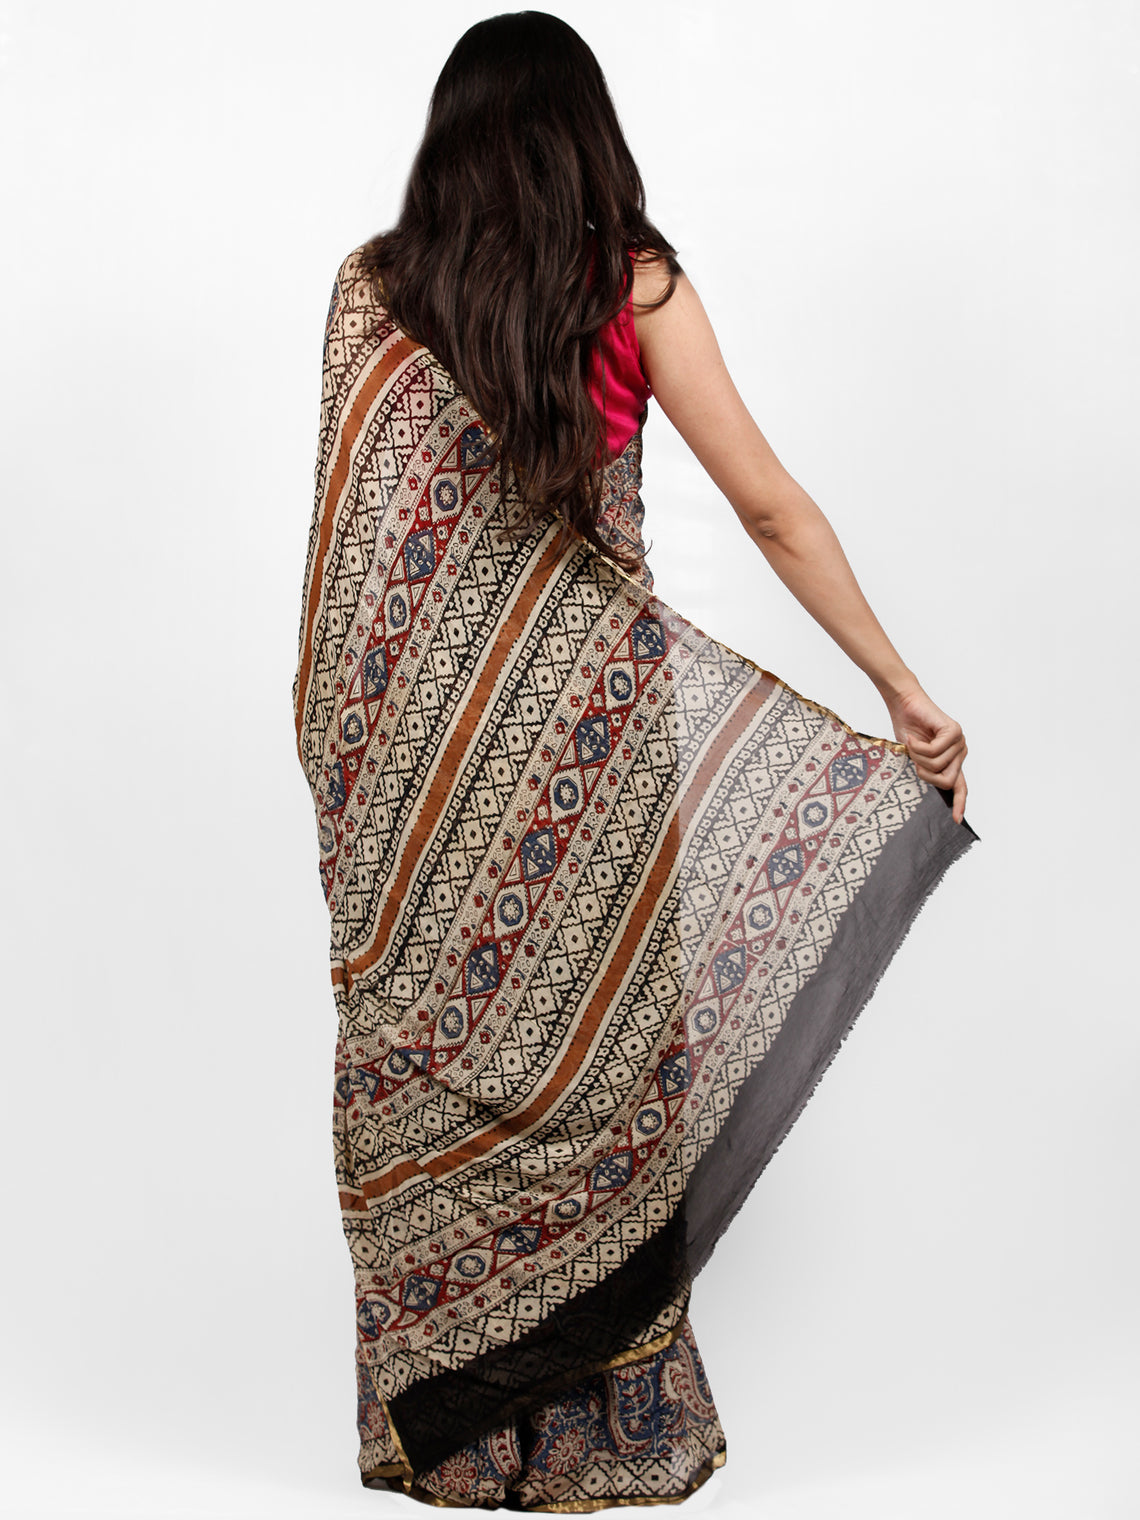 Ivory Indigo Black Maroon Hand Block Printed Chiffon Saree with Zari Border - S031703232